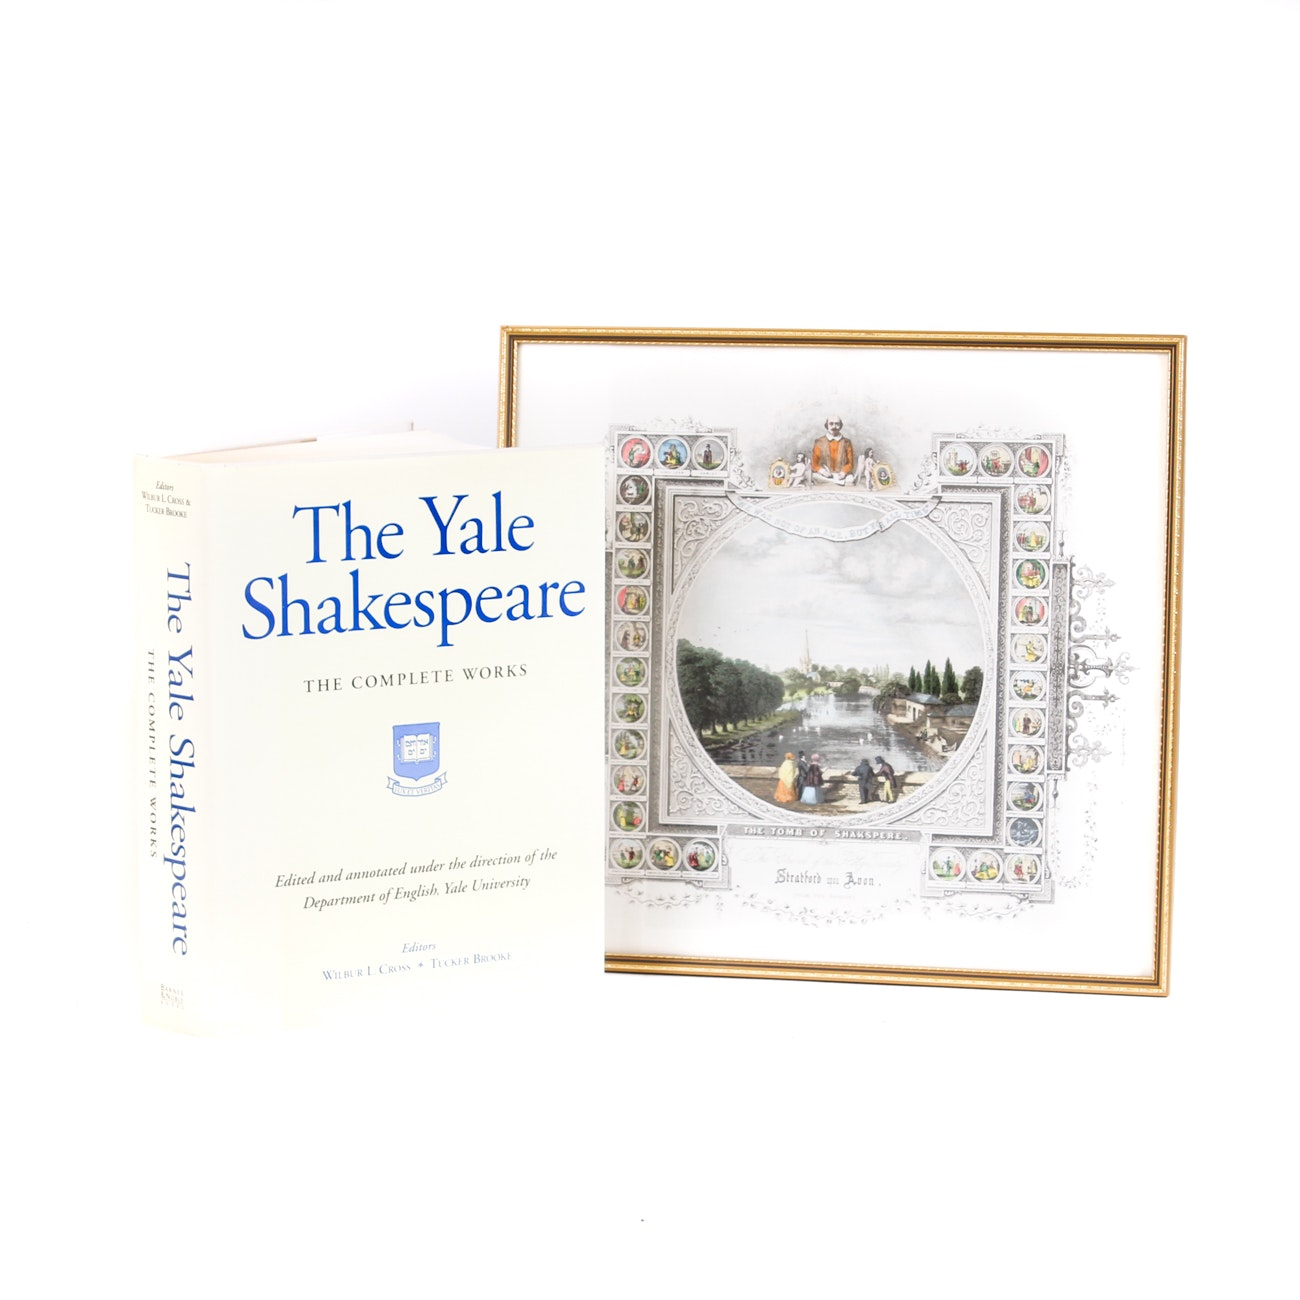 """Volume """"The Yale Shakespeare"""" and Framed Print of """"The Tomb of Shakspere"""""""